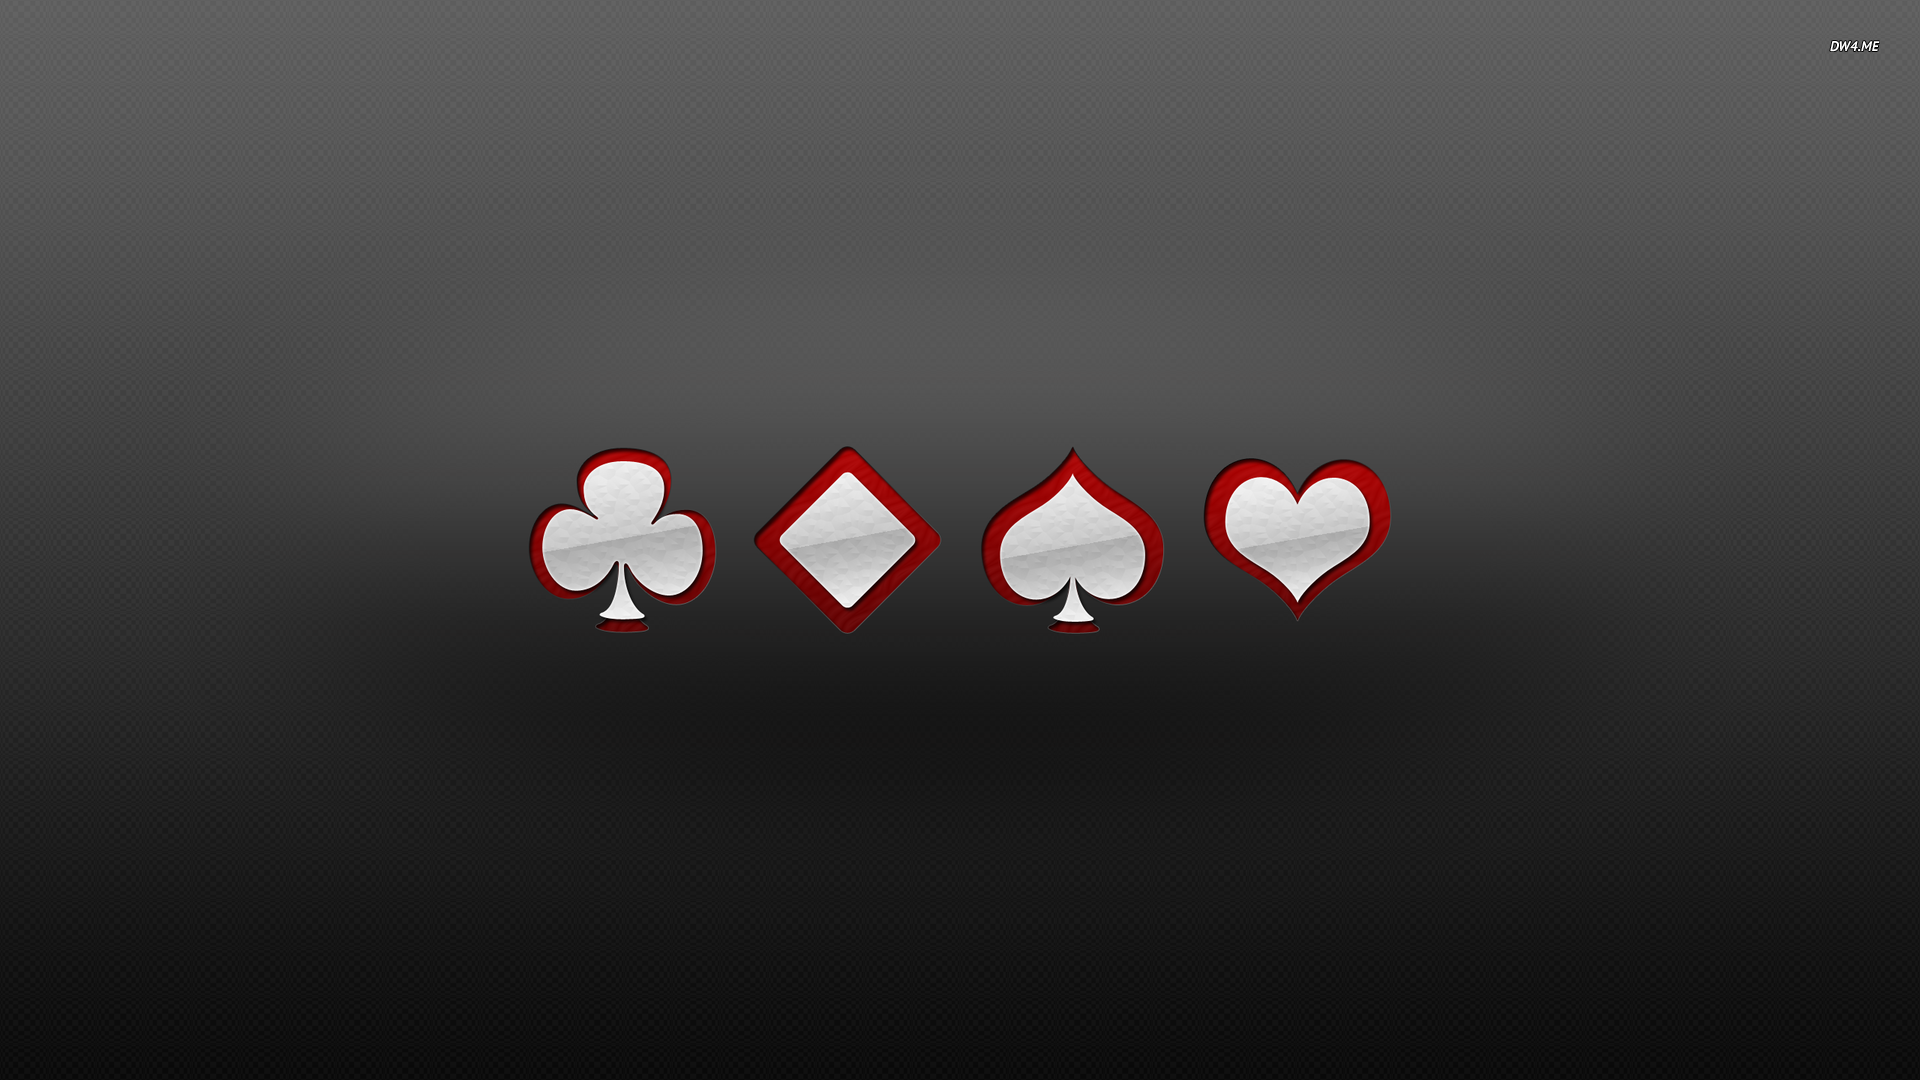 Get Better Casino Results By Following 3 Easy Steps